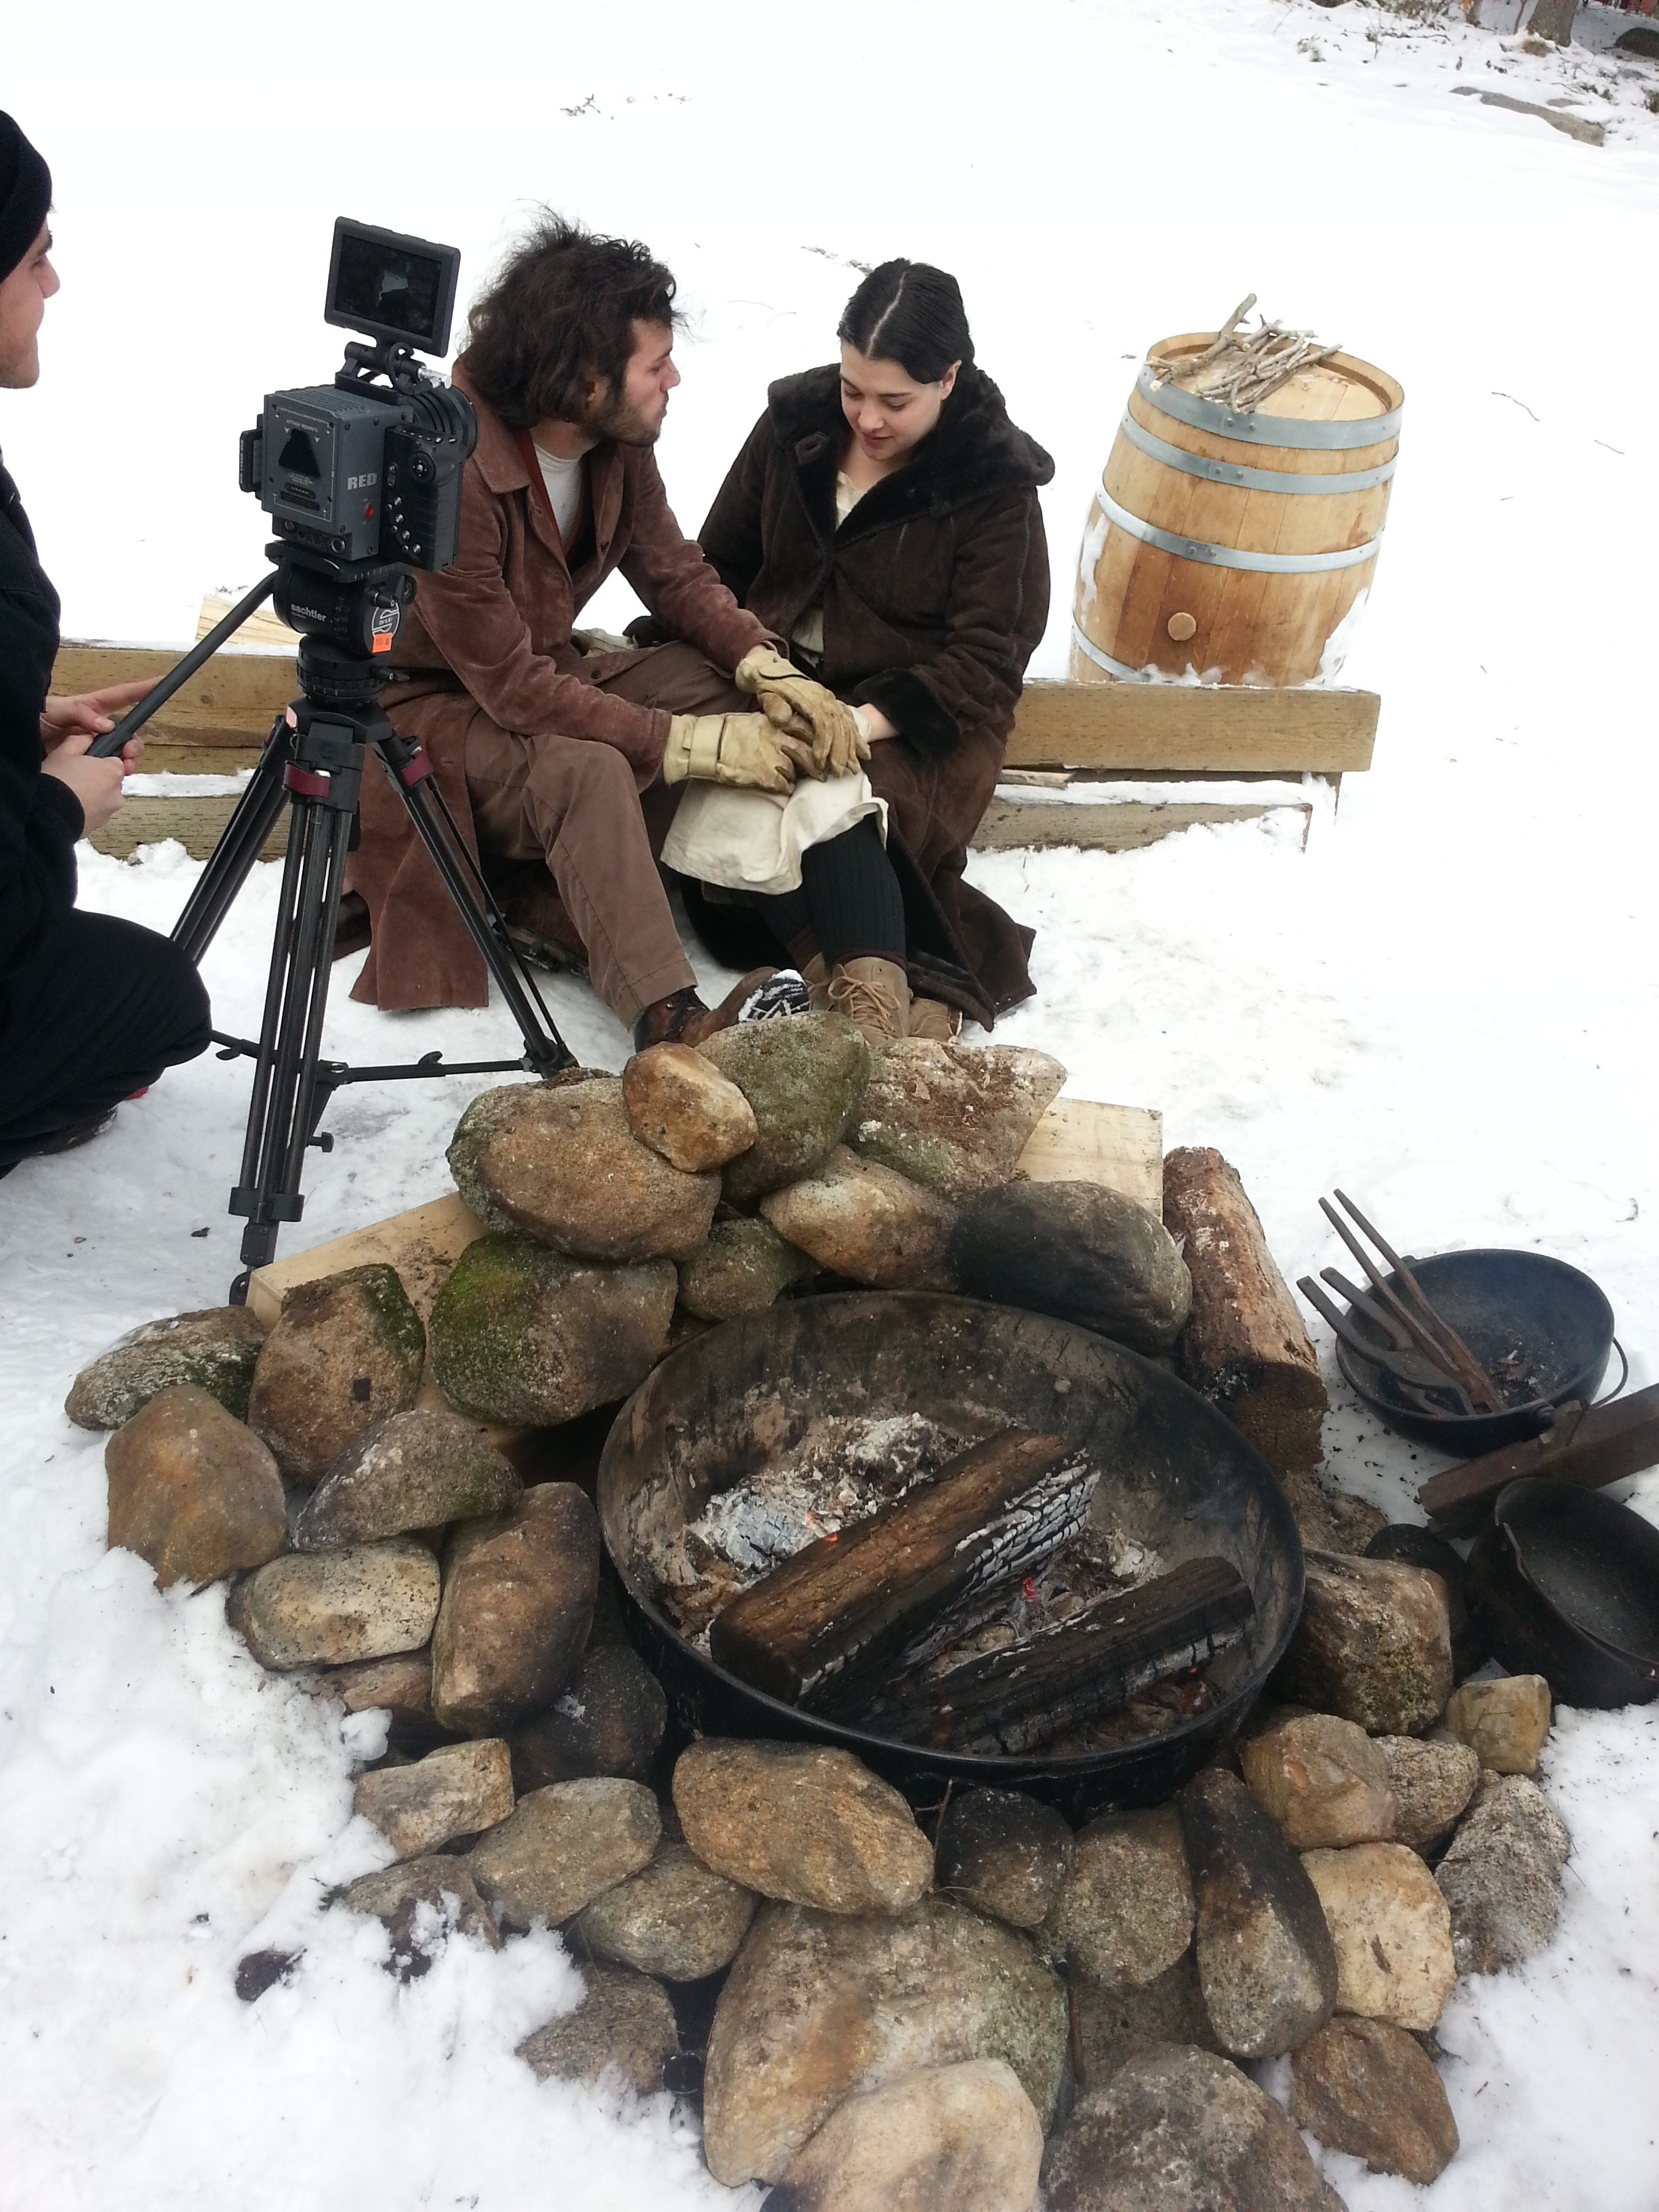 Filming their falling in love by a fire